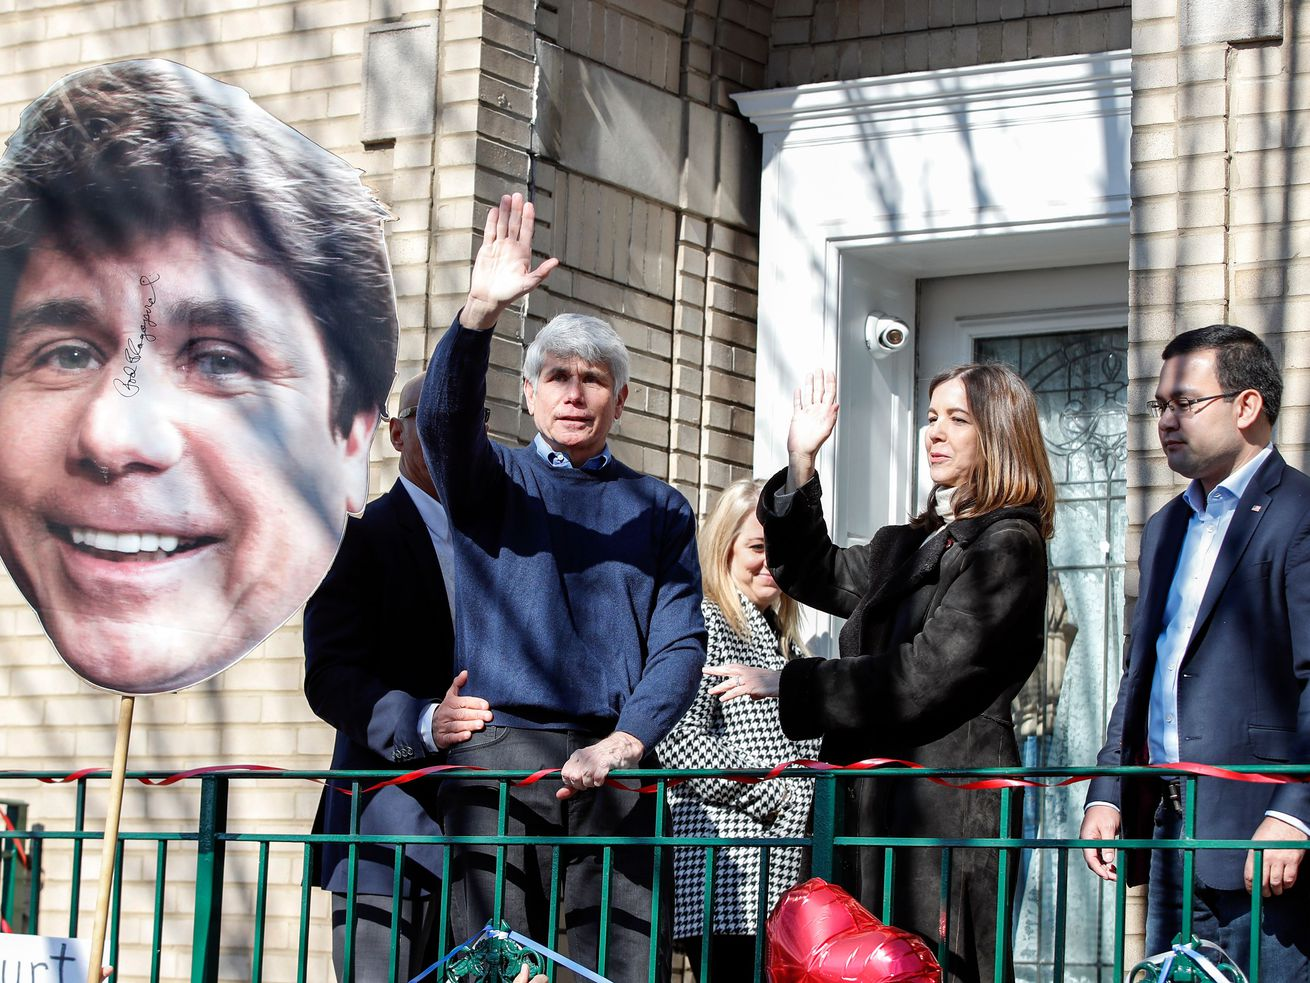 Former Illinois governor Rod Blagojevich and his wife Patricia Blagojevich wave to supporters outside of their house on February 19, 2020 in Chicago, Illinois.